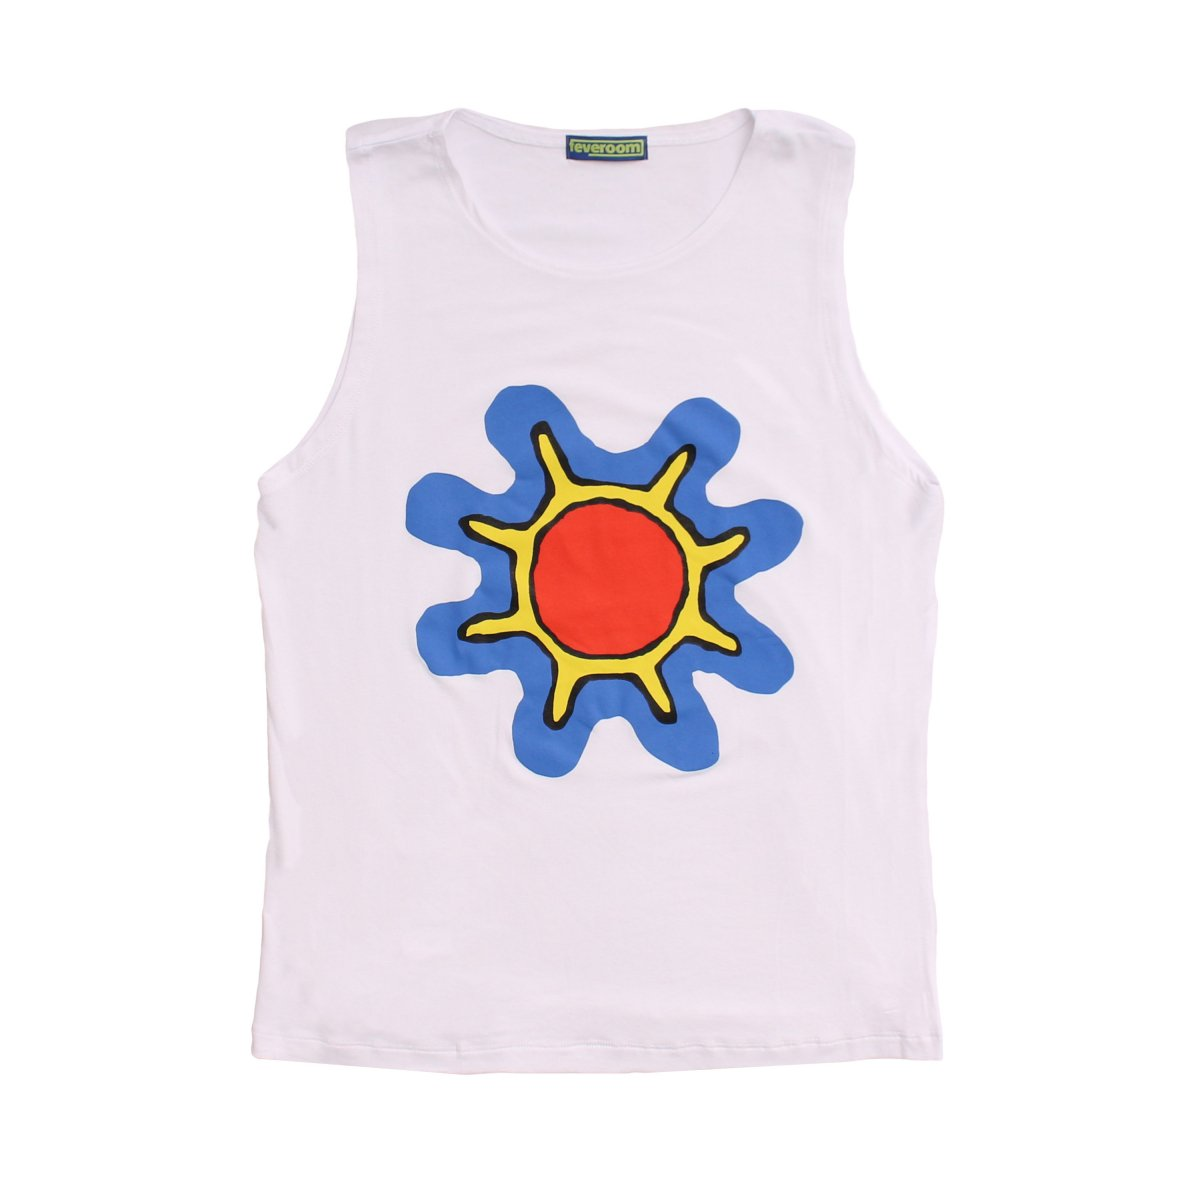 GERM FLOWER TANK TOP 【WHITE】